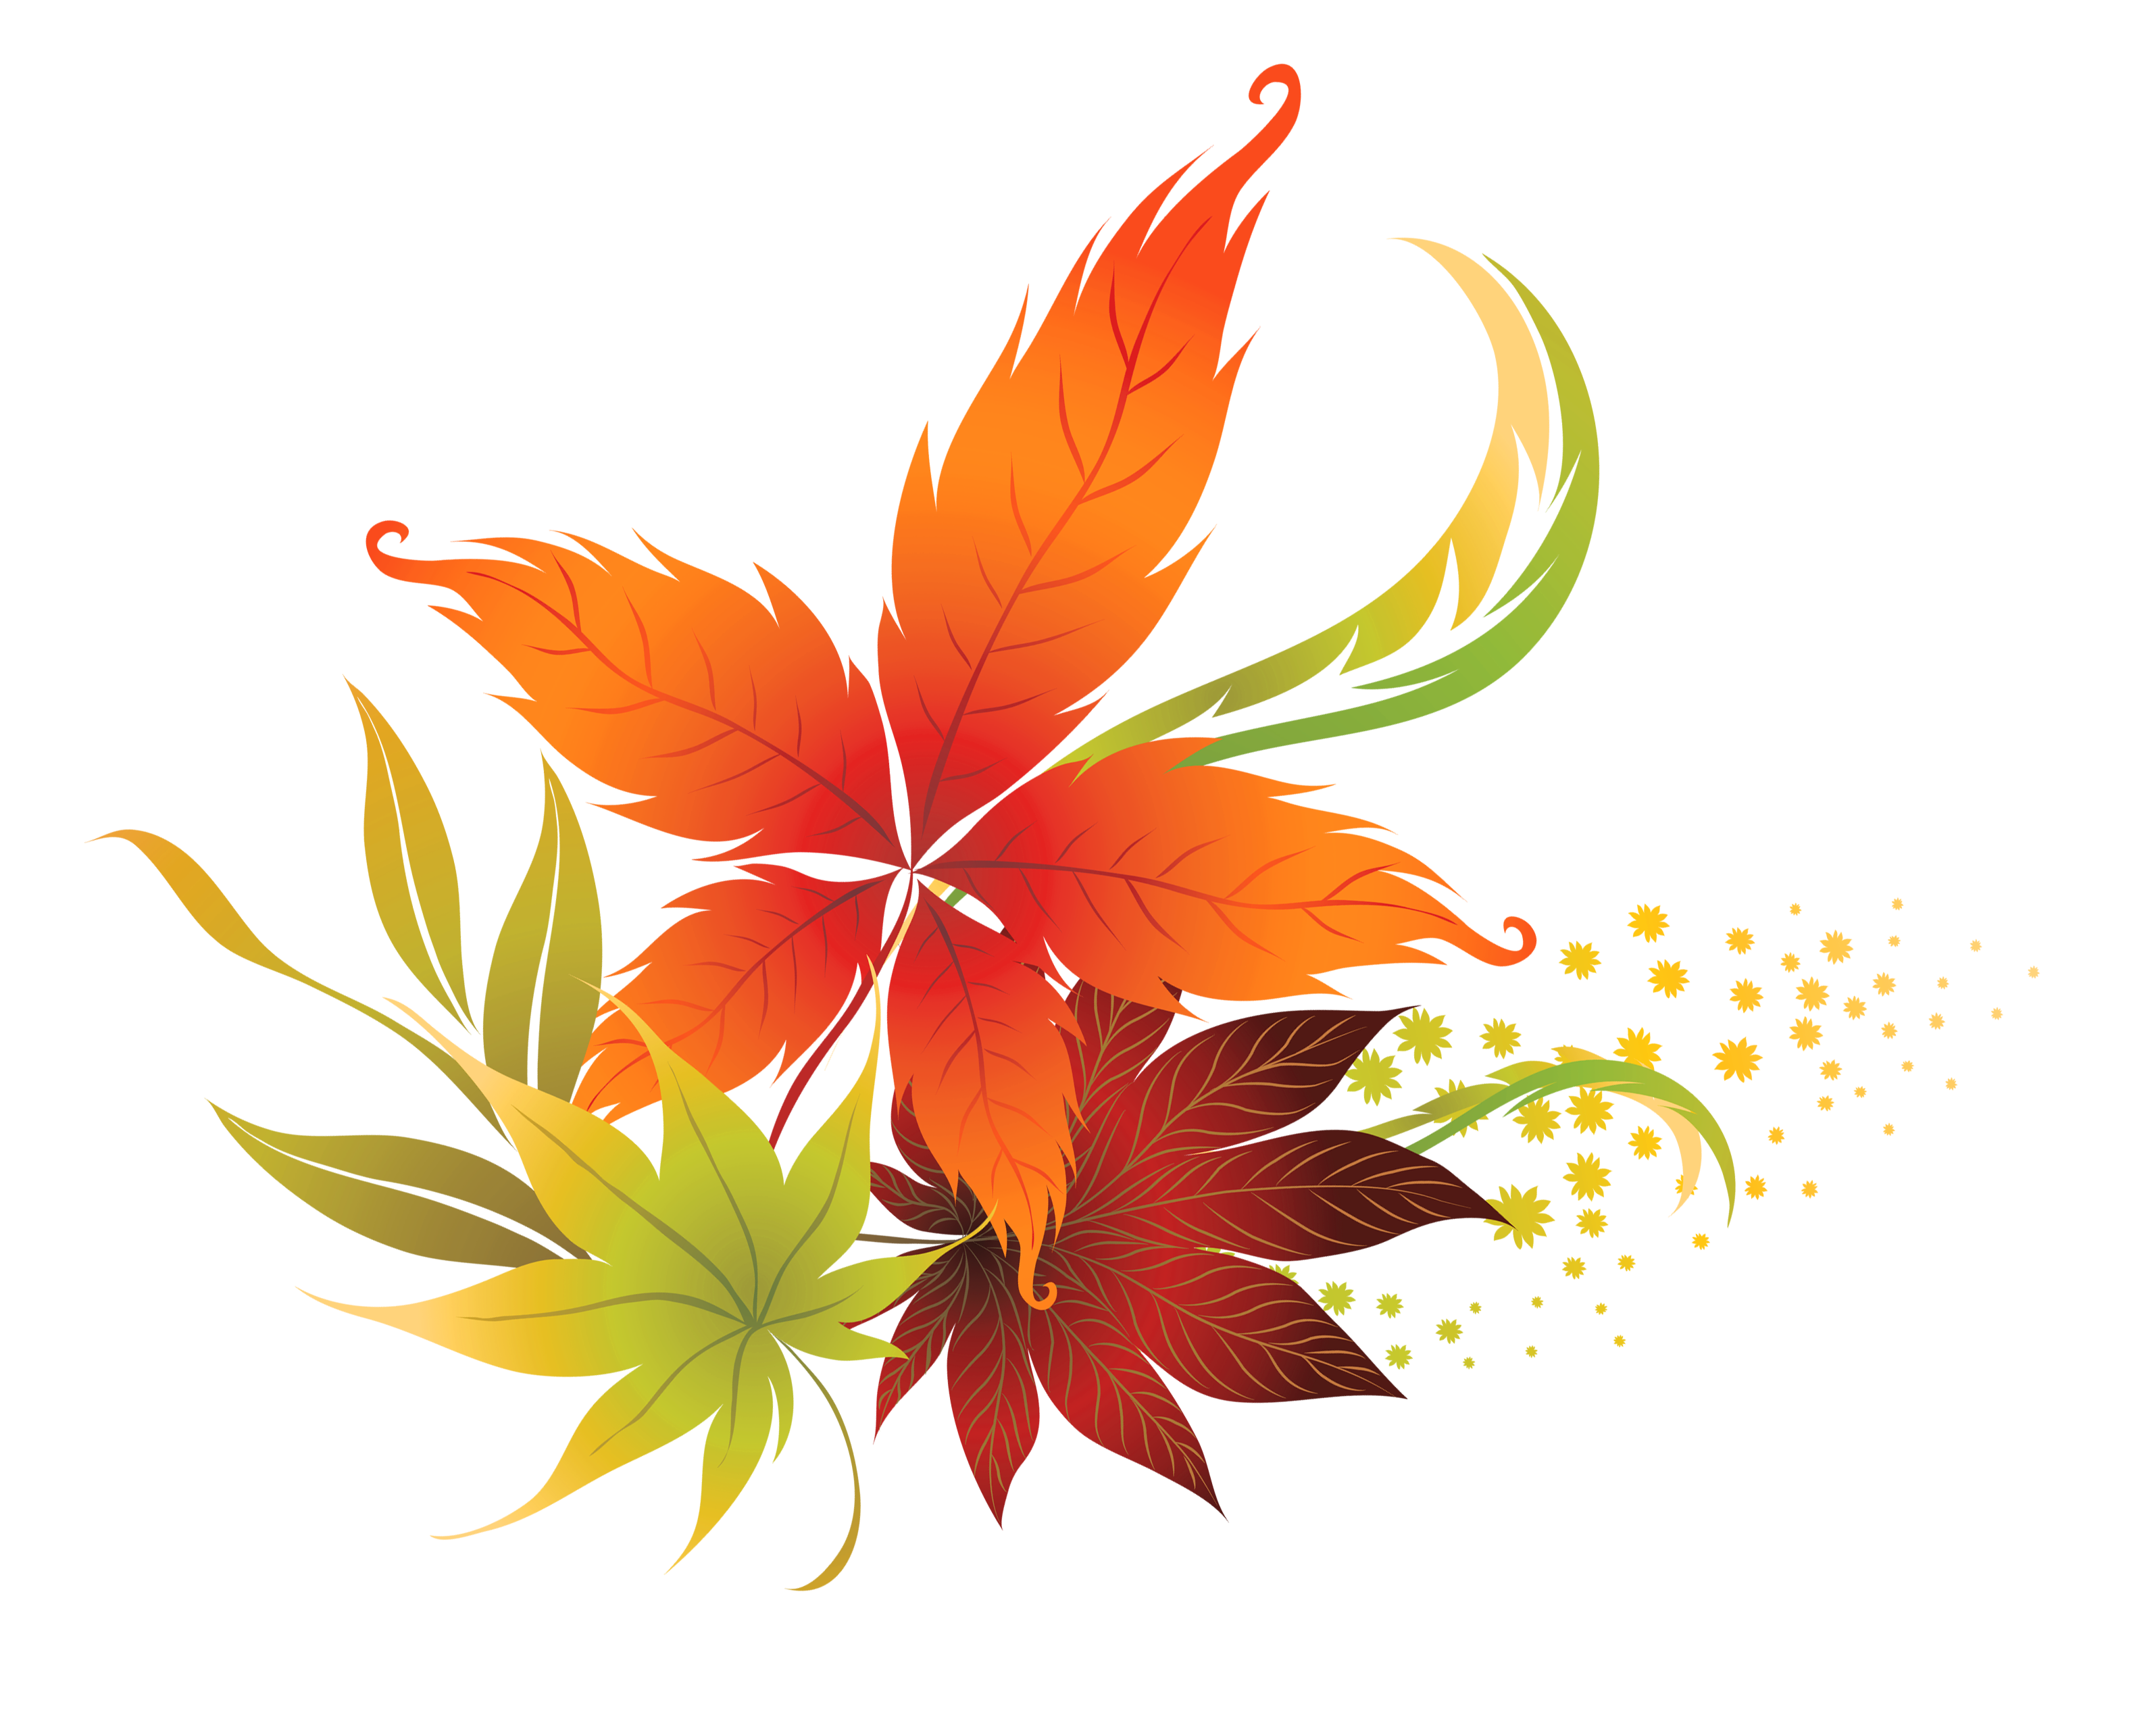 Poppy clipart clear background. Fall leaves leaf no